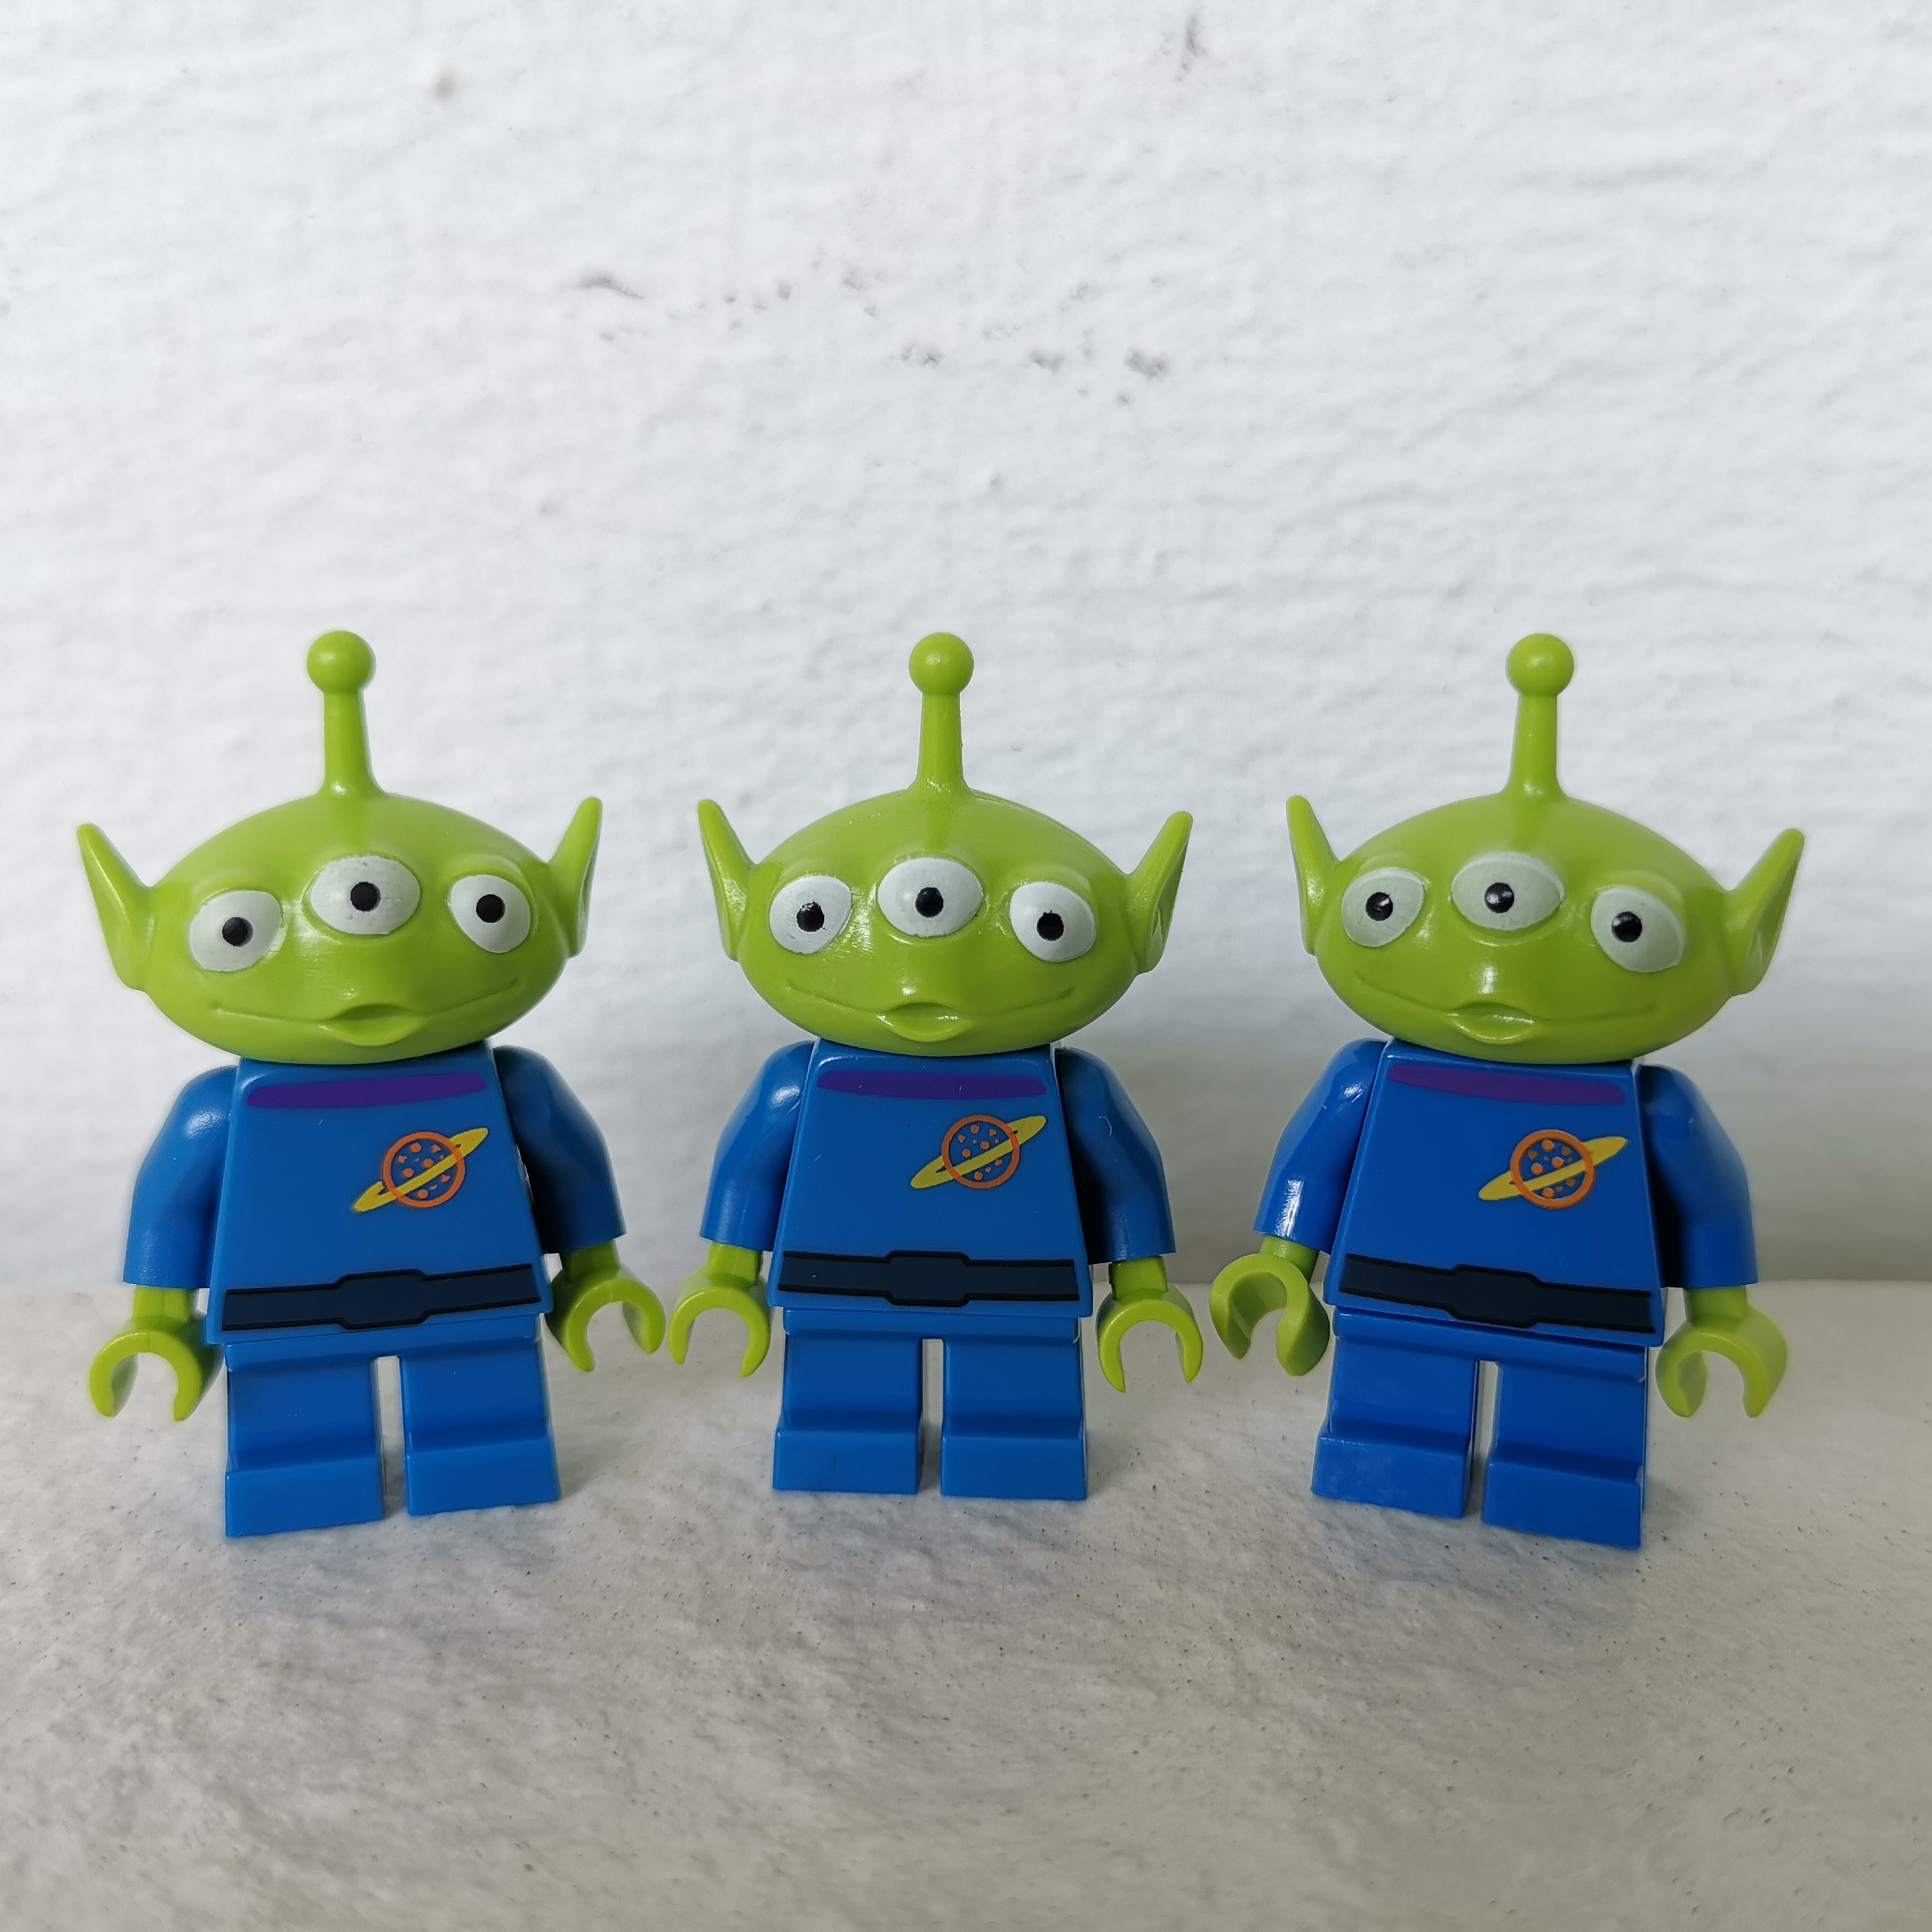 Lego Toy Story Alien Originated From Lego Toy Story Box Sets Not The Ones From Disney Minifigure Series 1 Price Is Per Figure Toys Games Bricks Figurines On Carousell